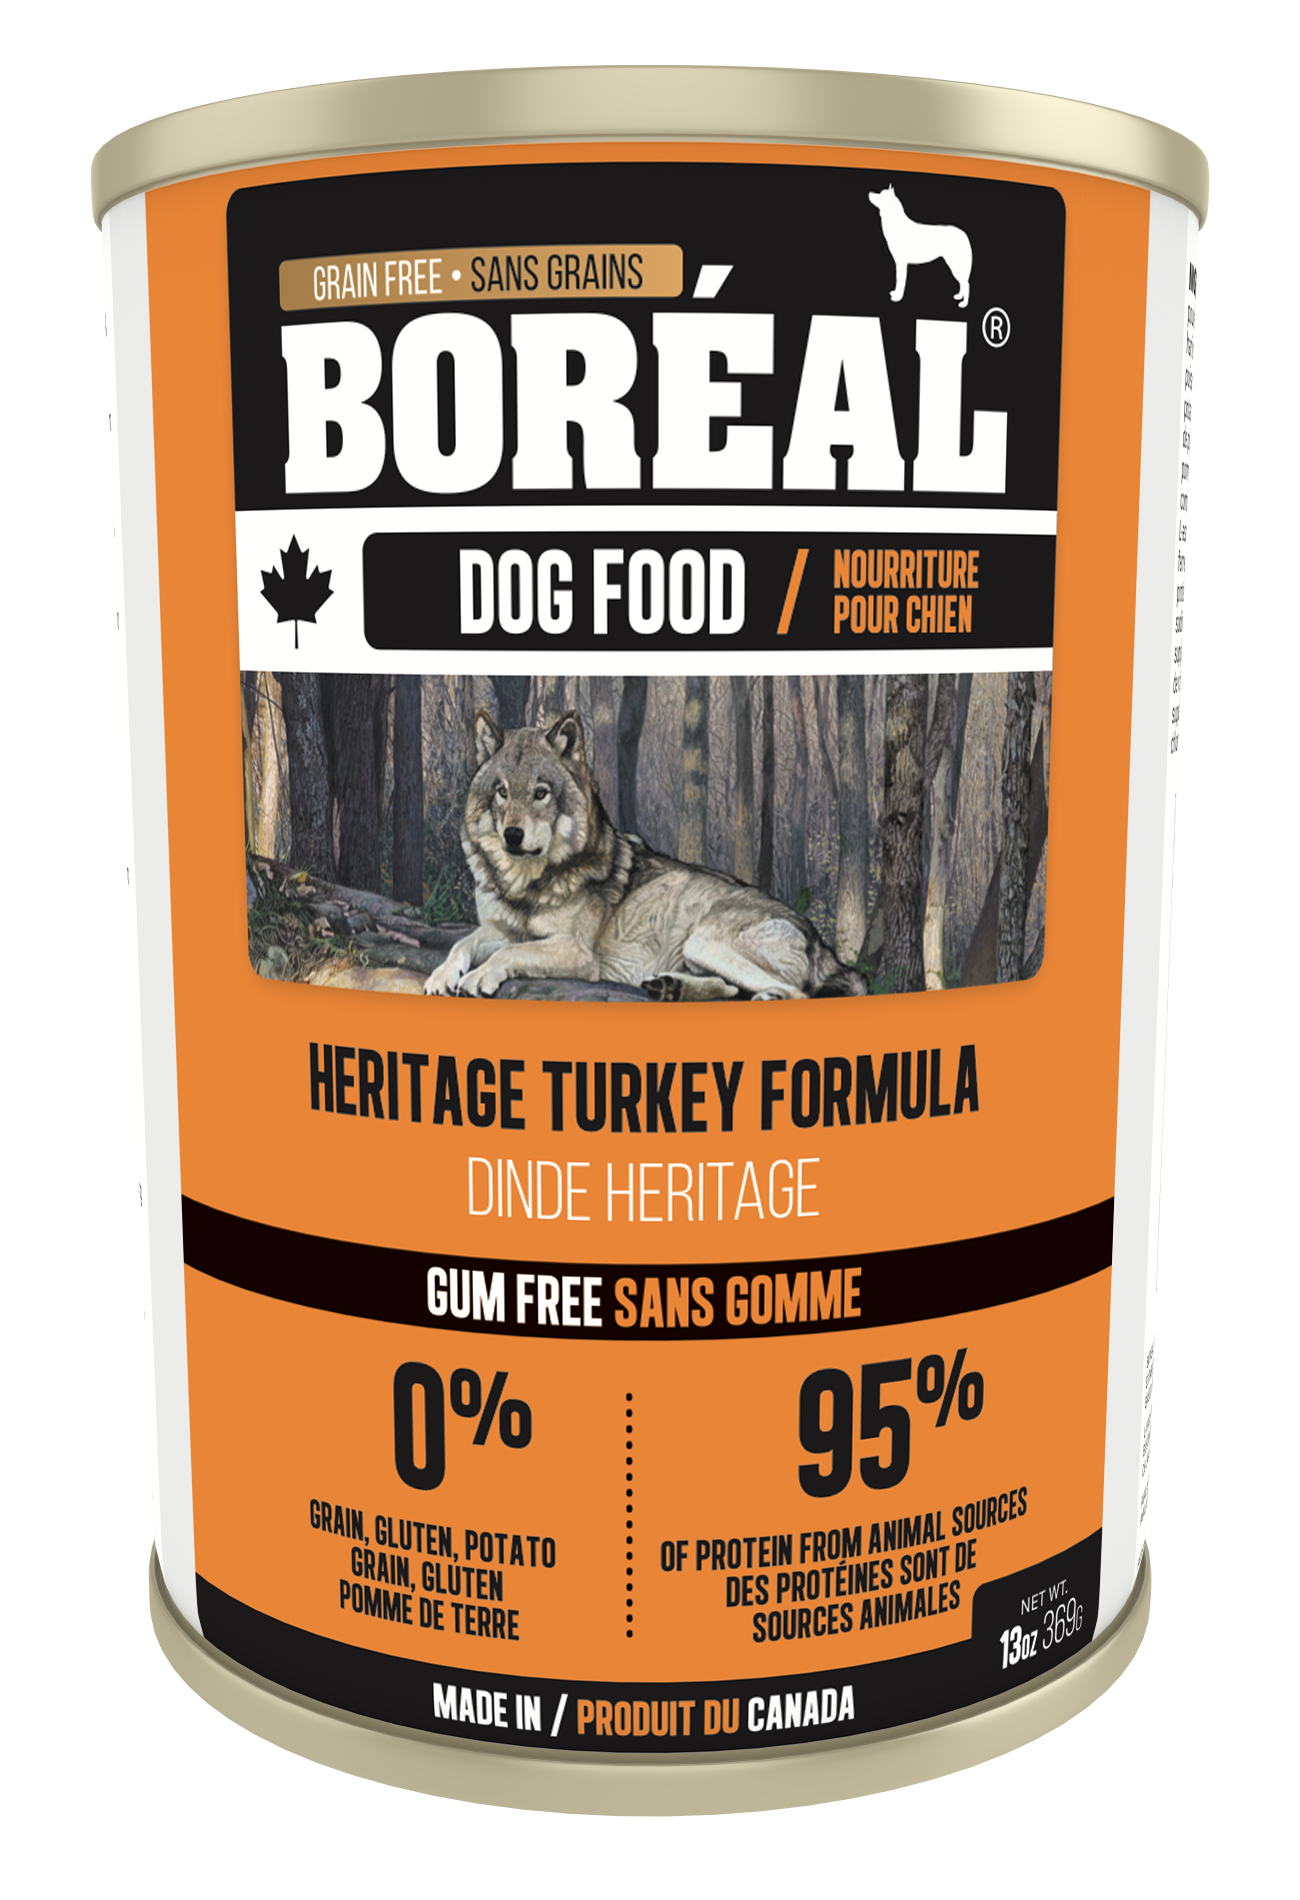 Boreal Grain-Free Canadian Heritage Turkey Formula Canned Dog Food, 369g can